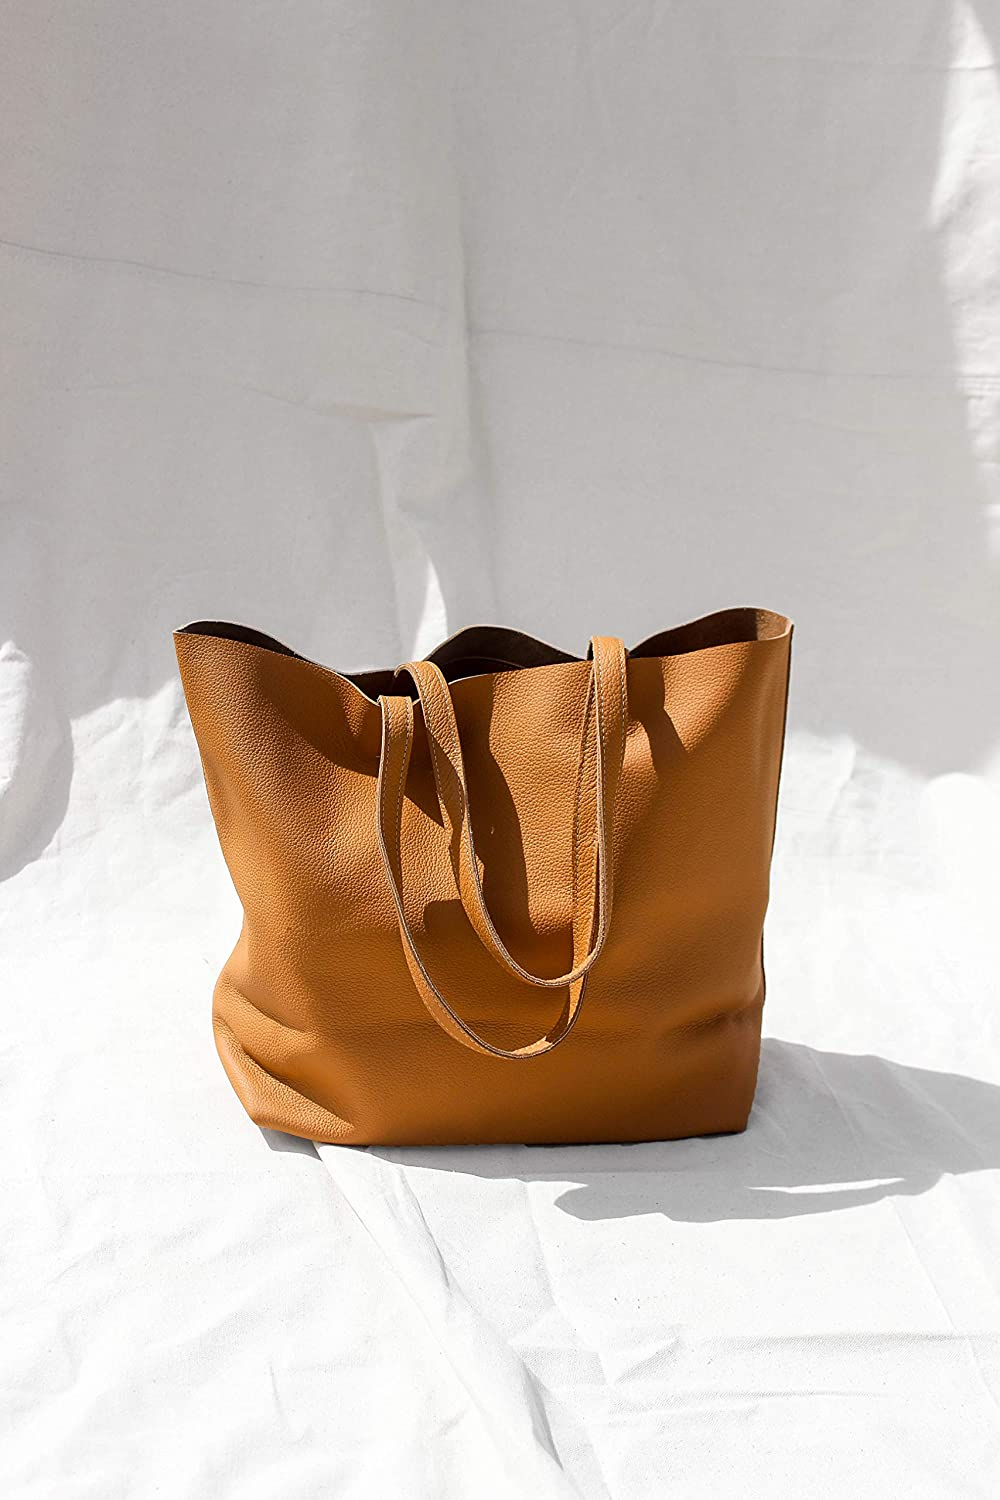 97262029d48 Amazon.com: Caramel - Oversized Leather Tote Bag: Handmade